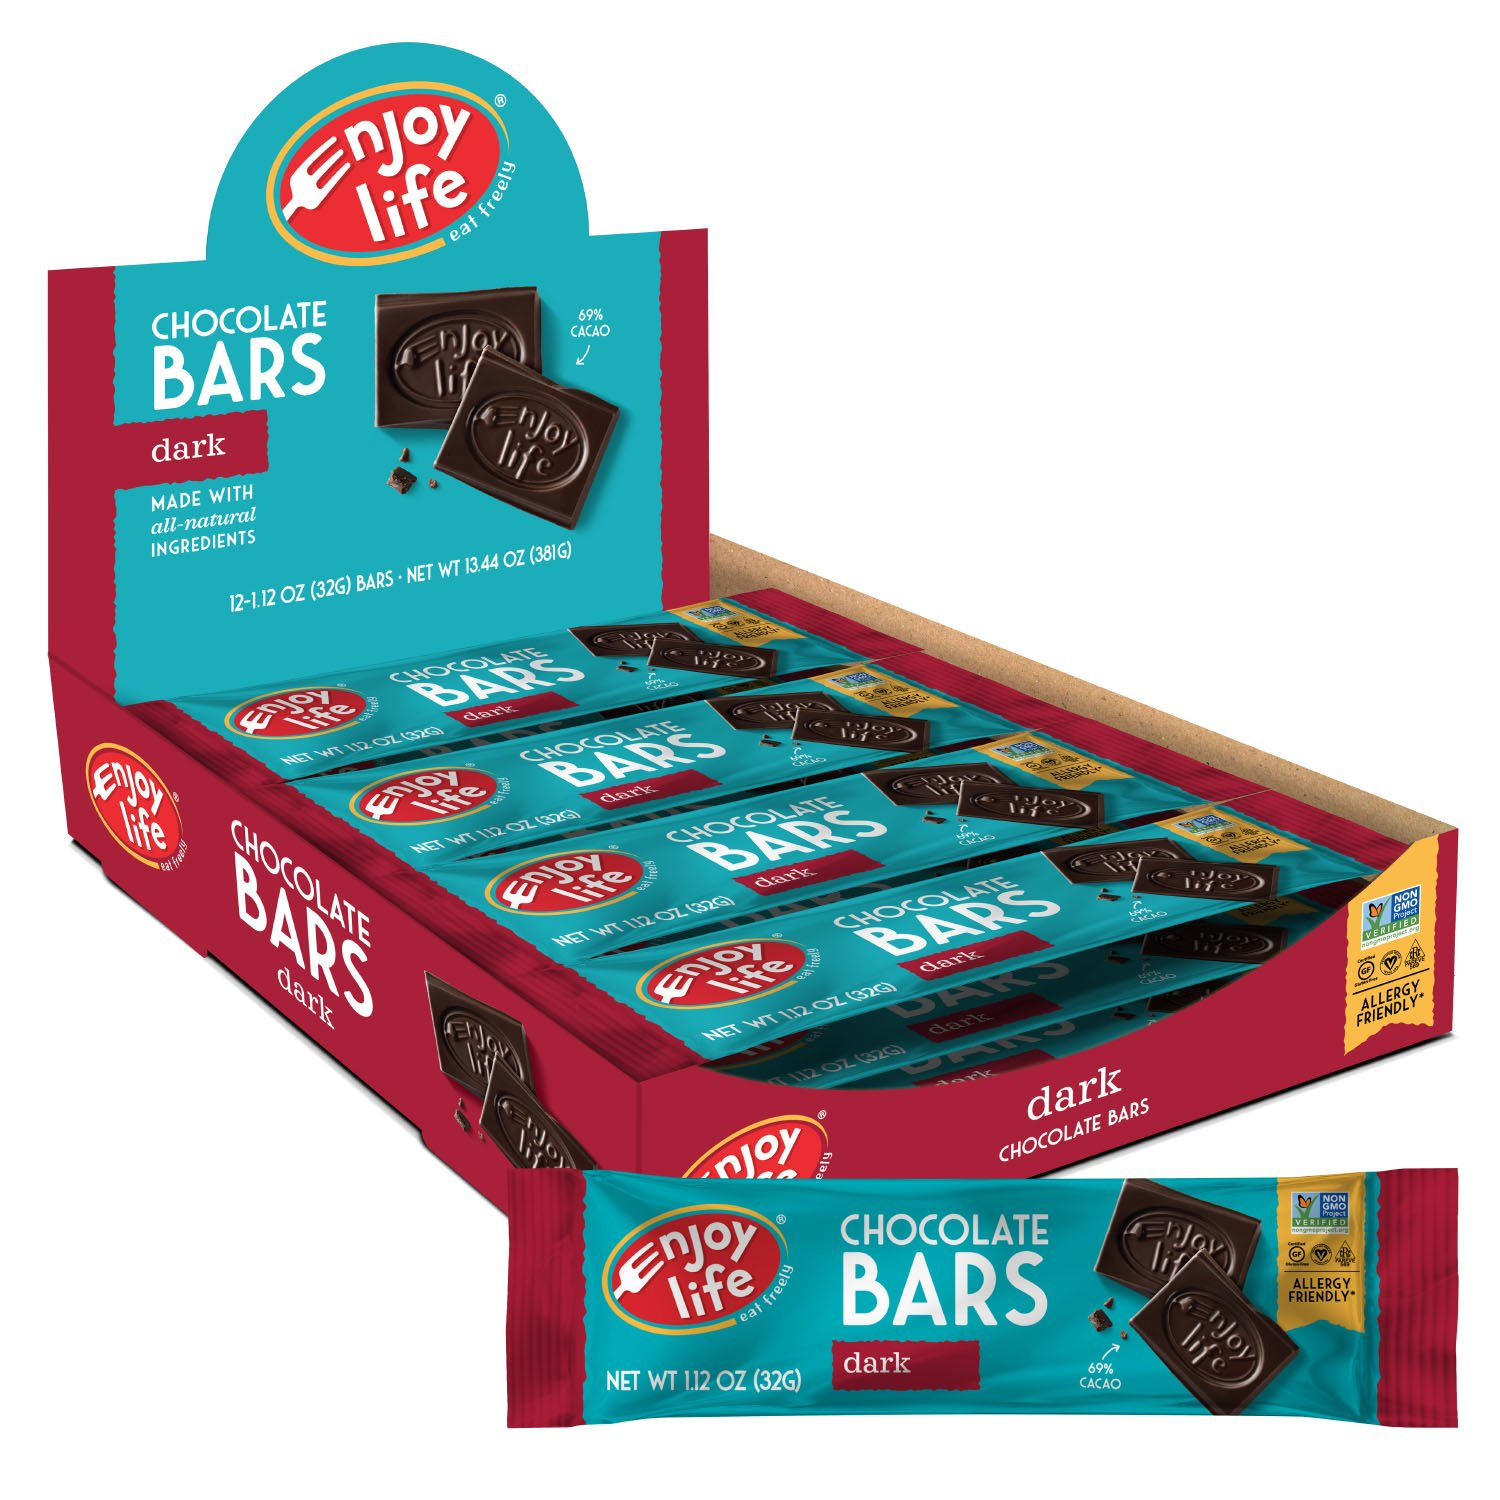 Enjoy Life Foods Chocolate Bars, Dark Chocolate, Soy Free, Nut Free, Gluten Free, Non GMO, Paleo, Dairy Free Chocolate, 2 Boxes of 12 Bars (24 Total Bars), 1.12 ounce